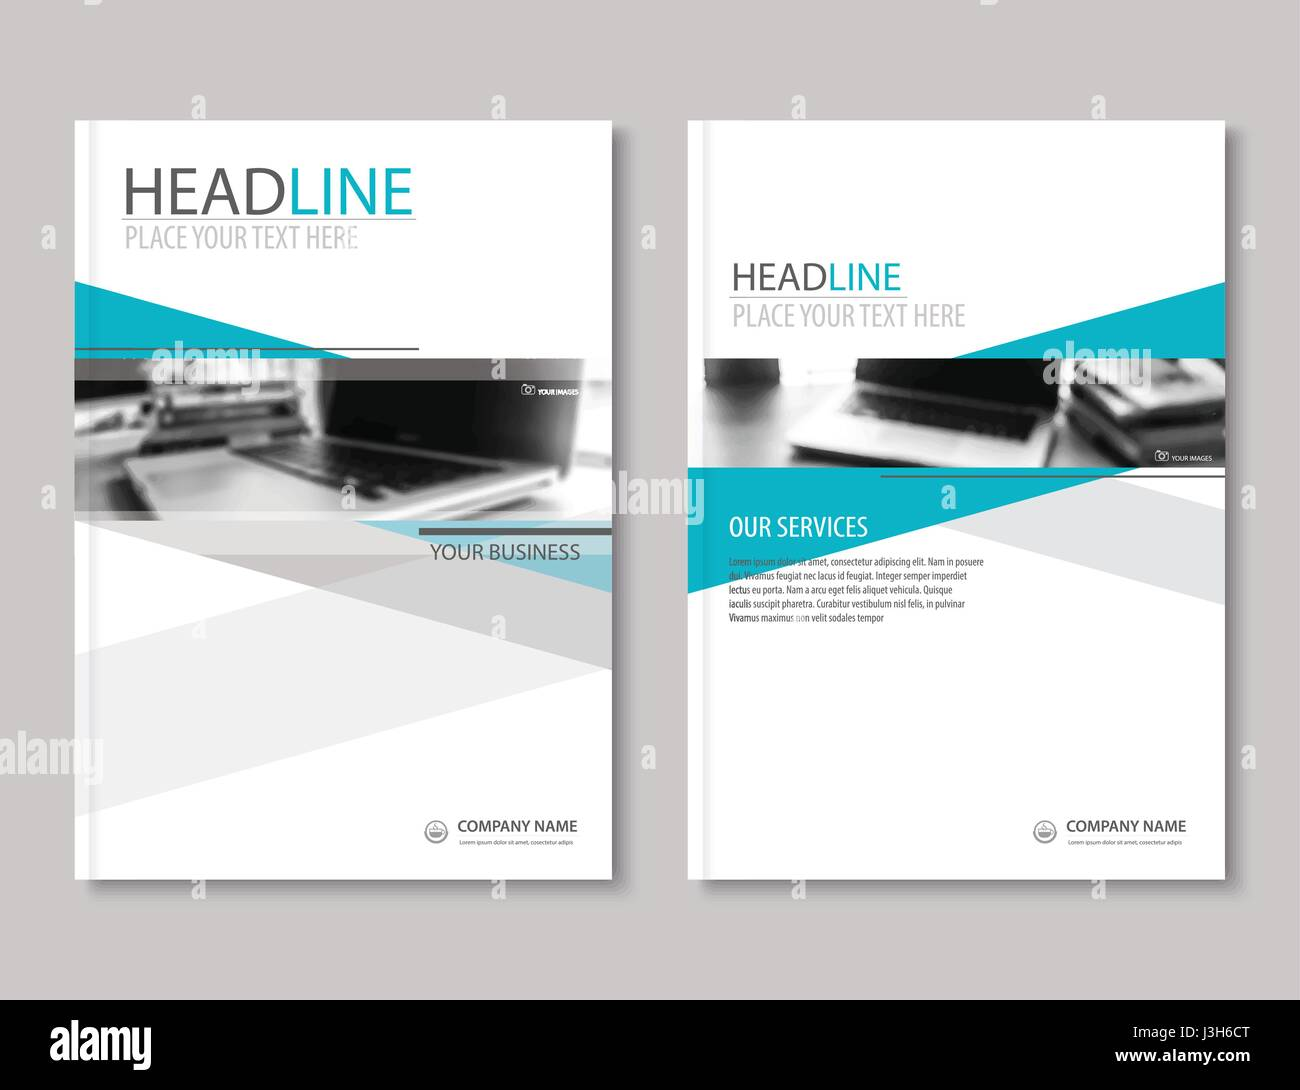 annual report brochure flyer design template  company profile stock vector art  u0026 illustration